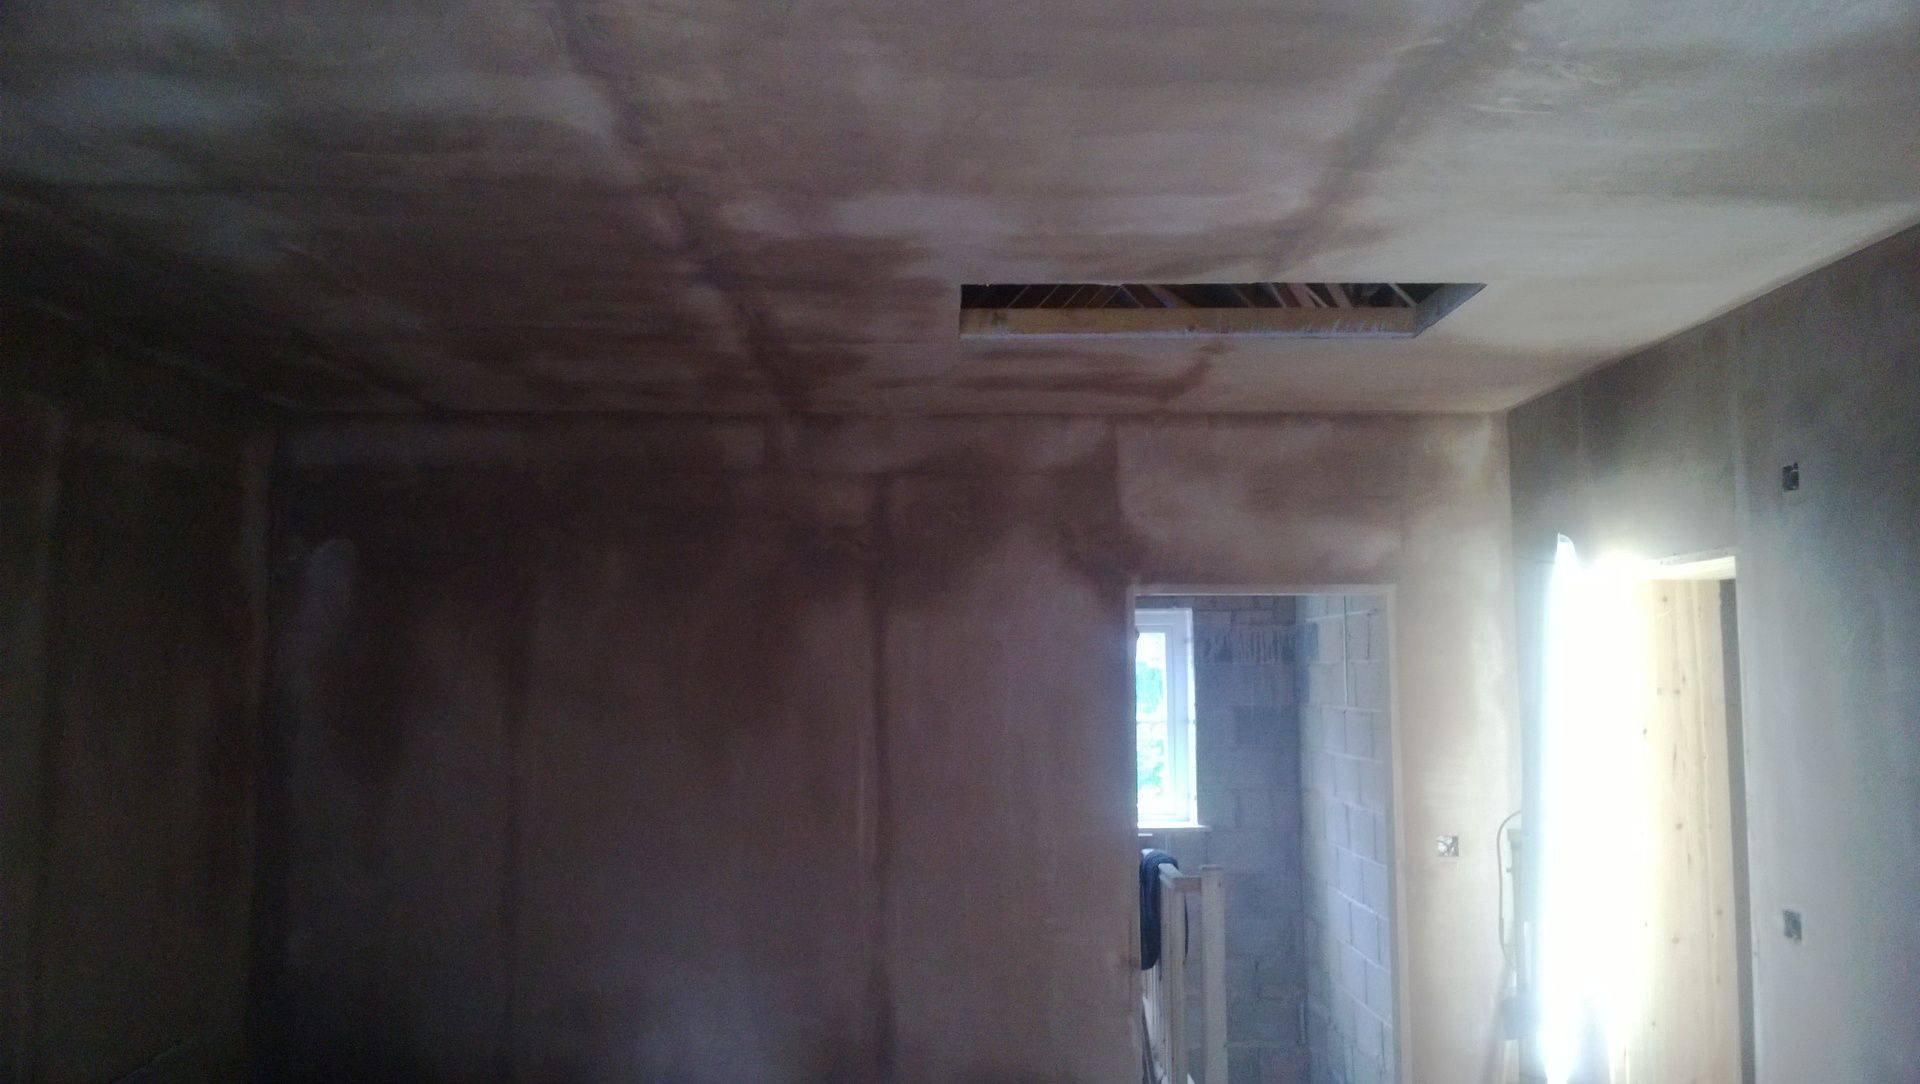 Dab and board and skim job in compton, wolverhampton